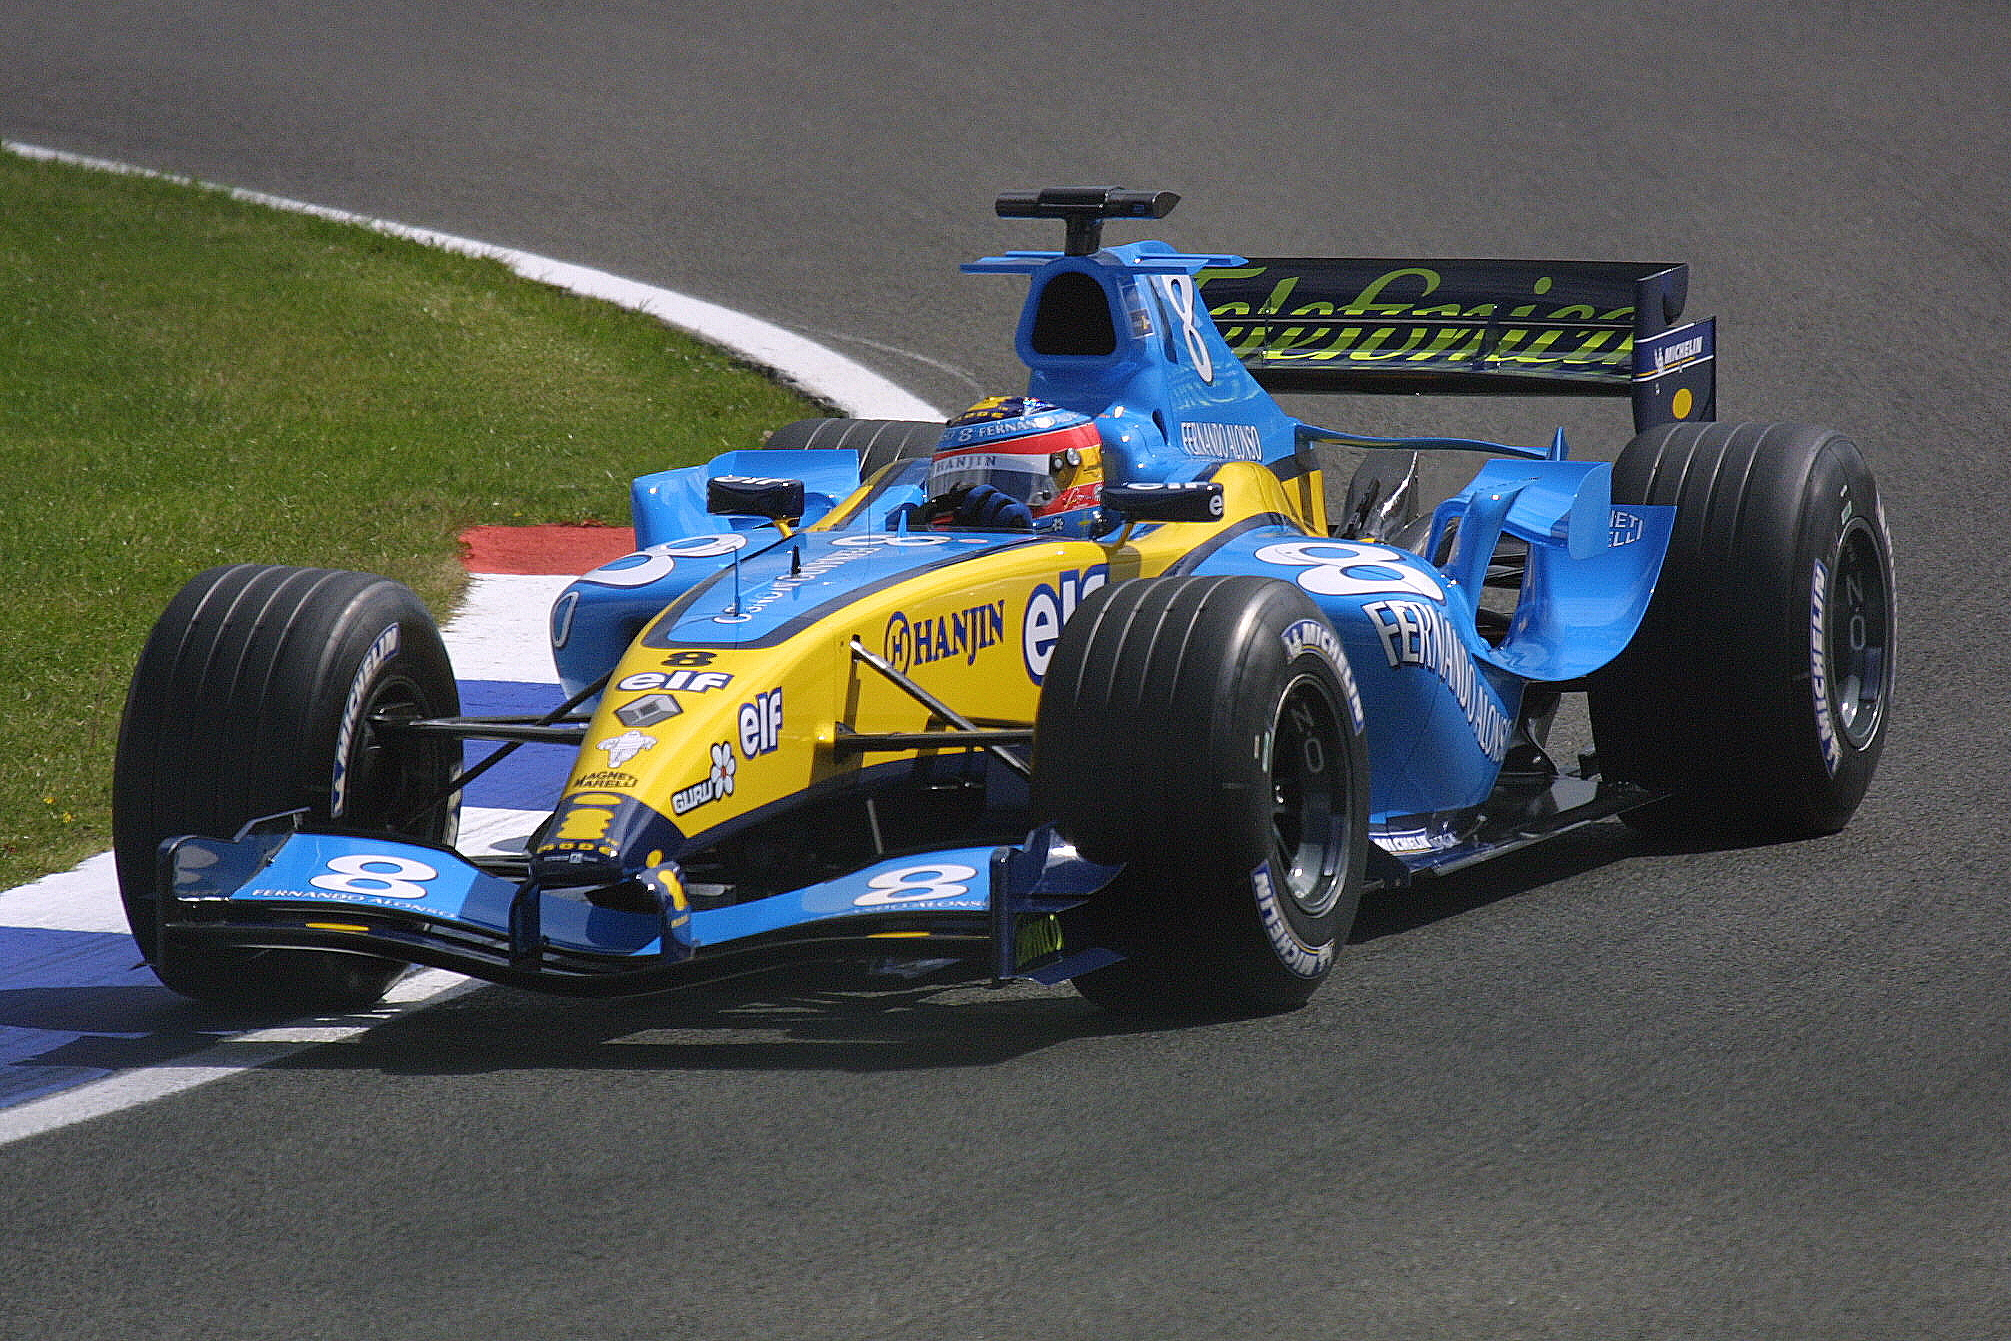 Fernando Alonso - Renault R24 Renault V10 | Flickr - Photo Sharing!